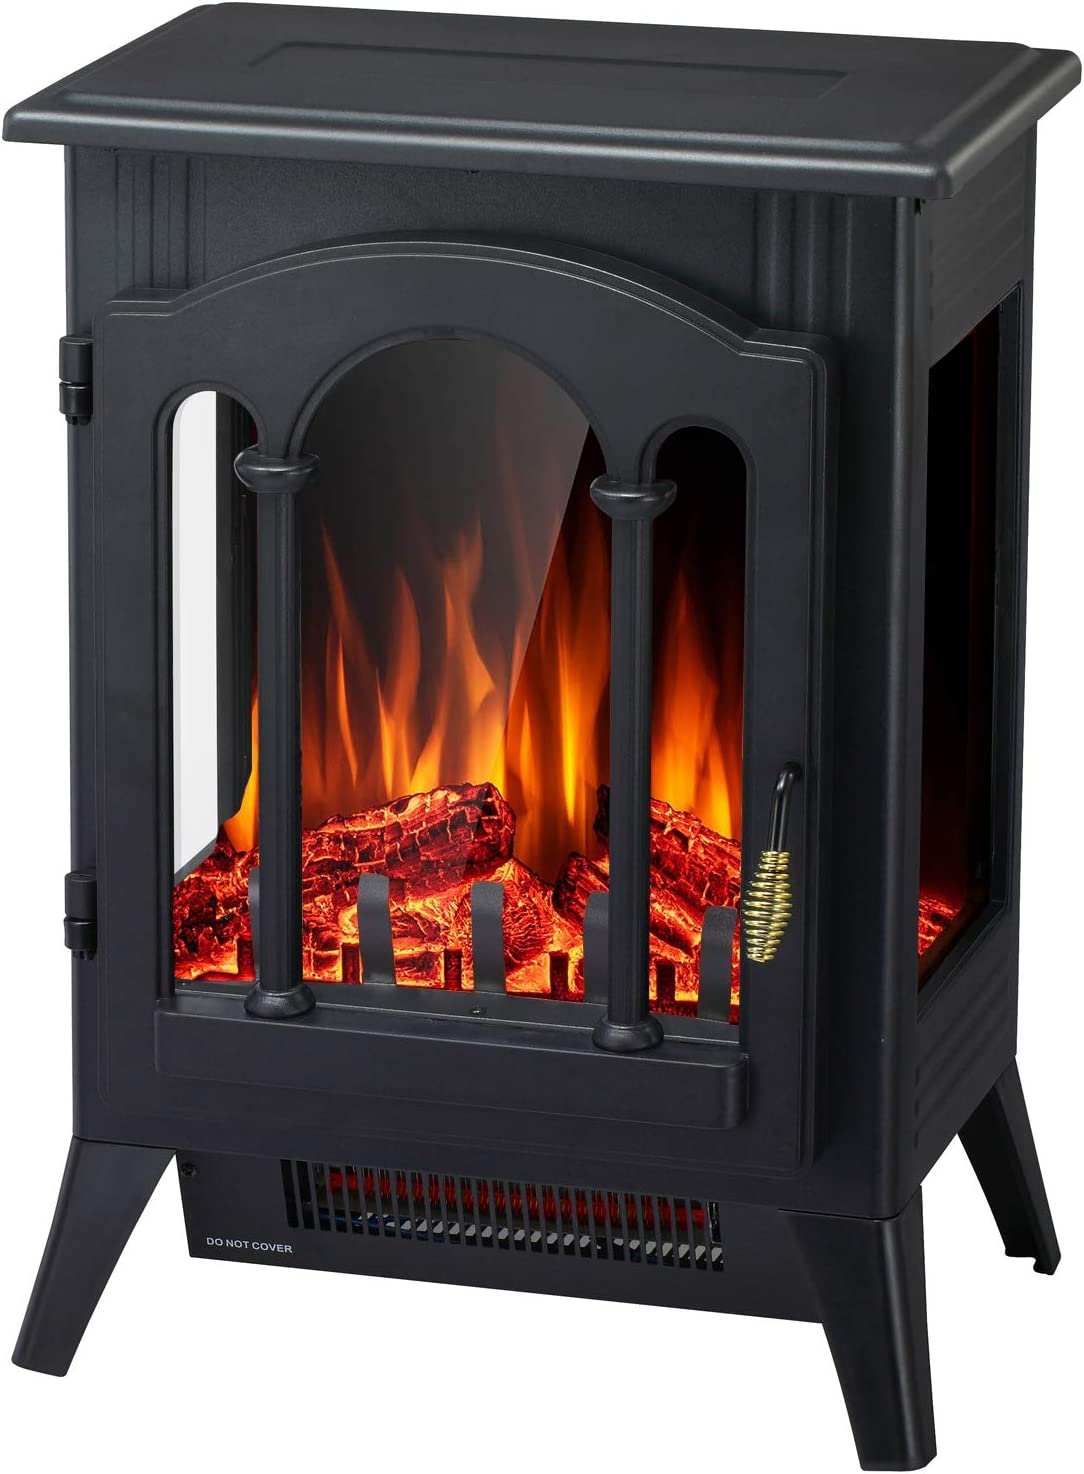 Stoves & Fireplaces Antratic Star Infrared Electric Fireplace ...